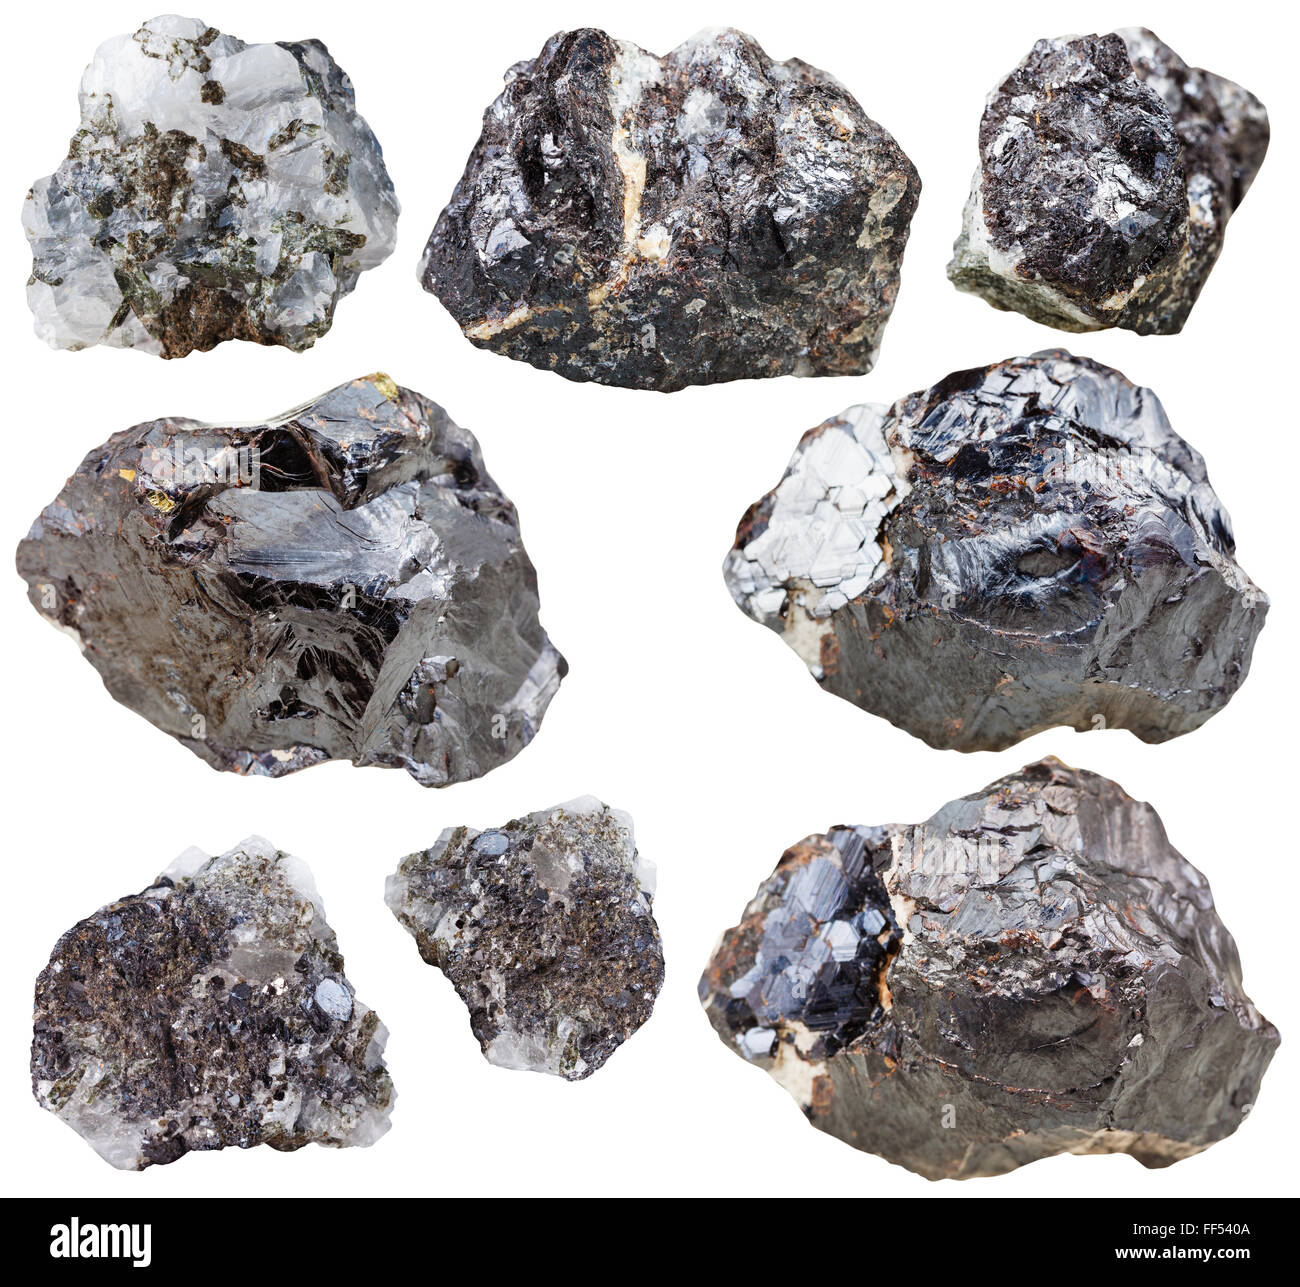 set of natural mineral stones - specimens of sphalerite gemstones and rocks isolated on white background - Stock Image